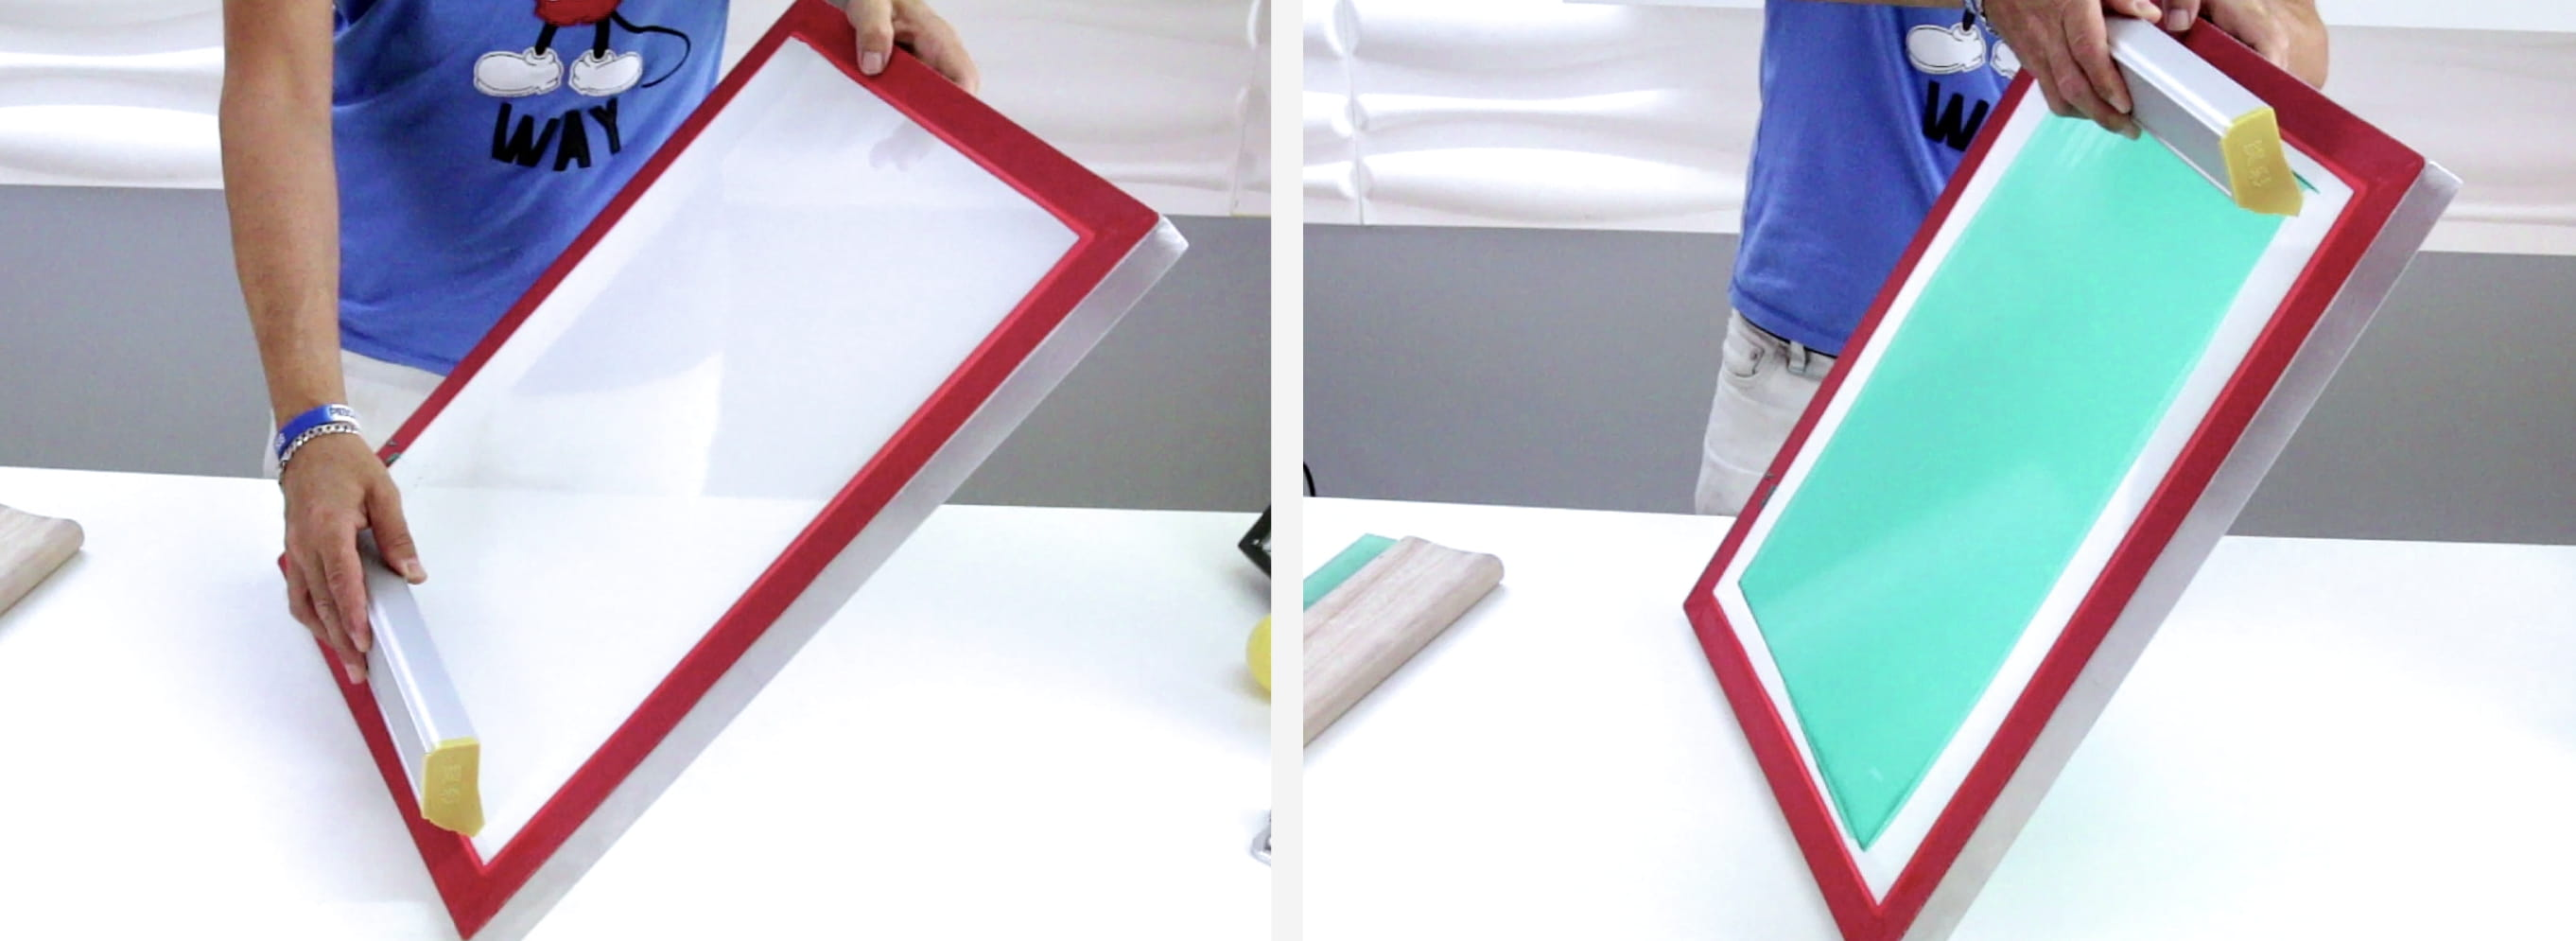 How to Coat a Screen with Emulsion for Screen Printing